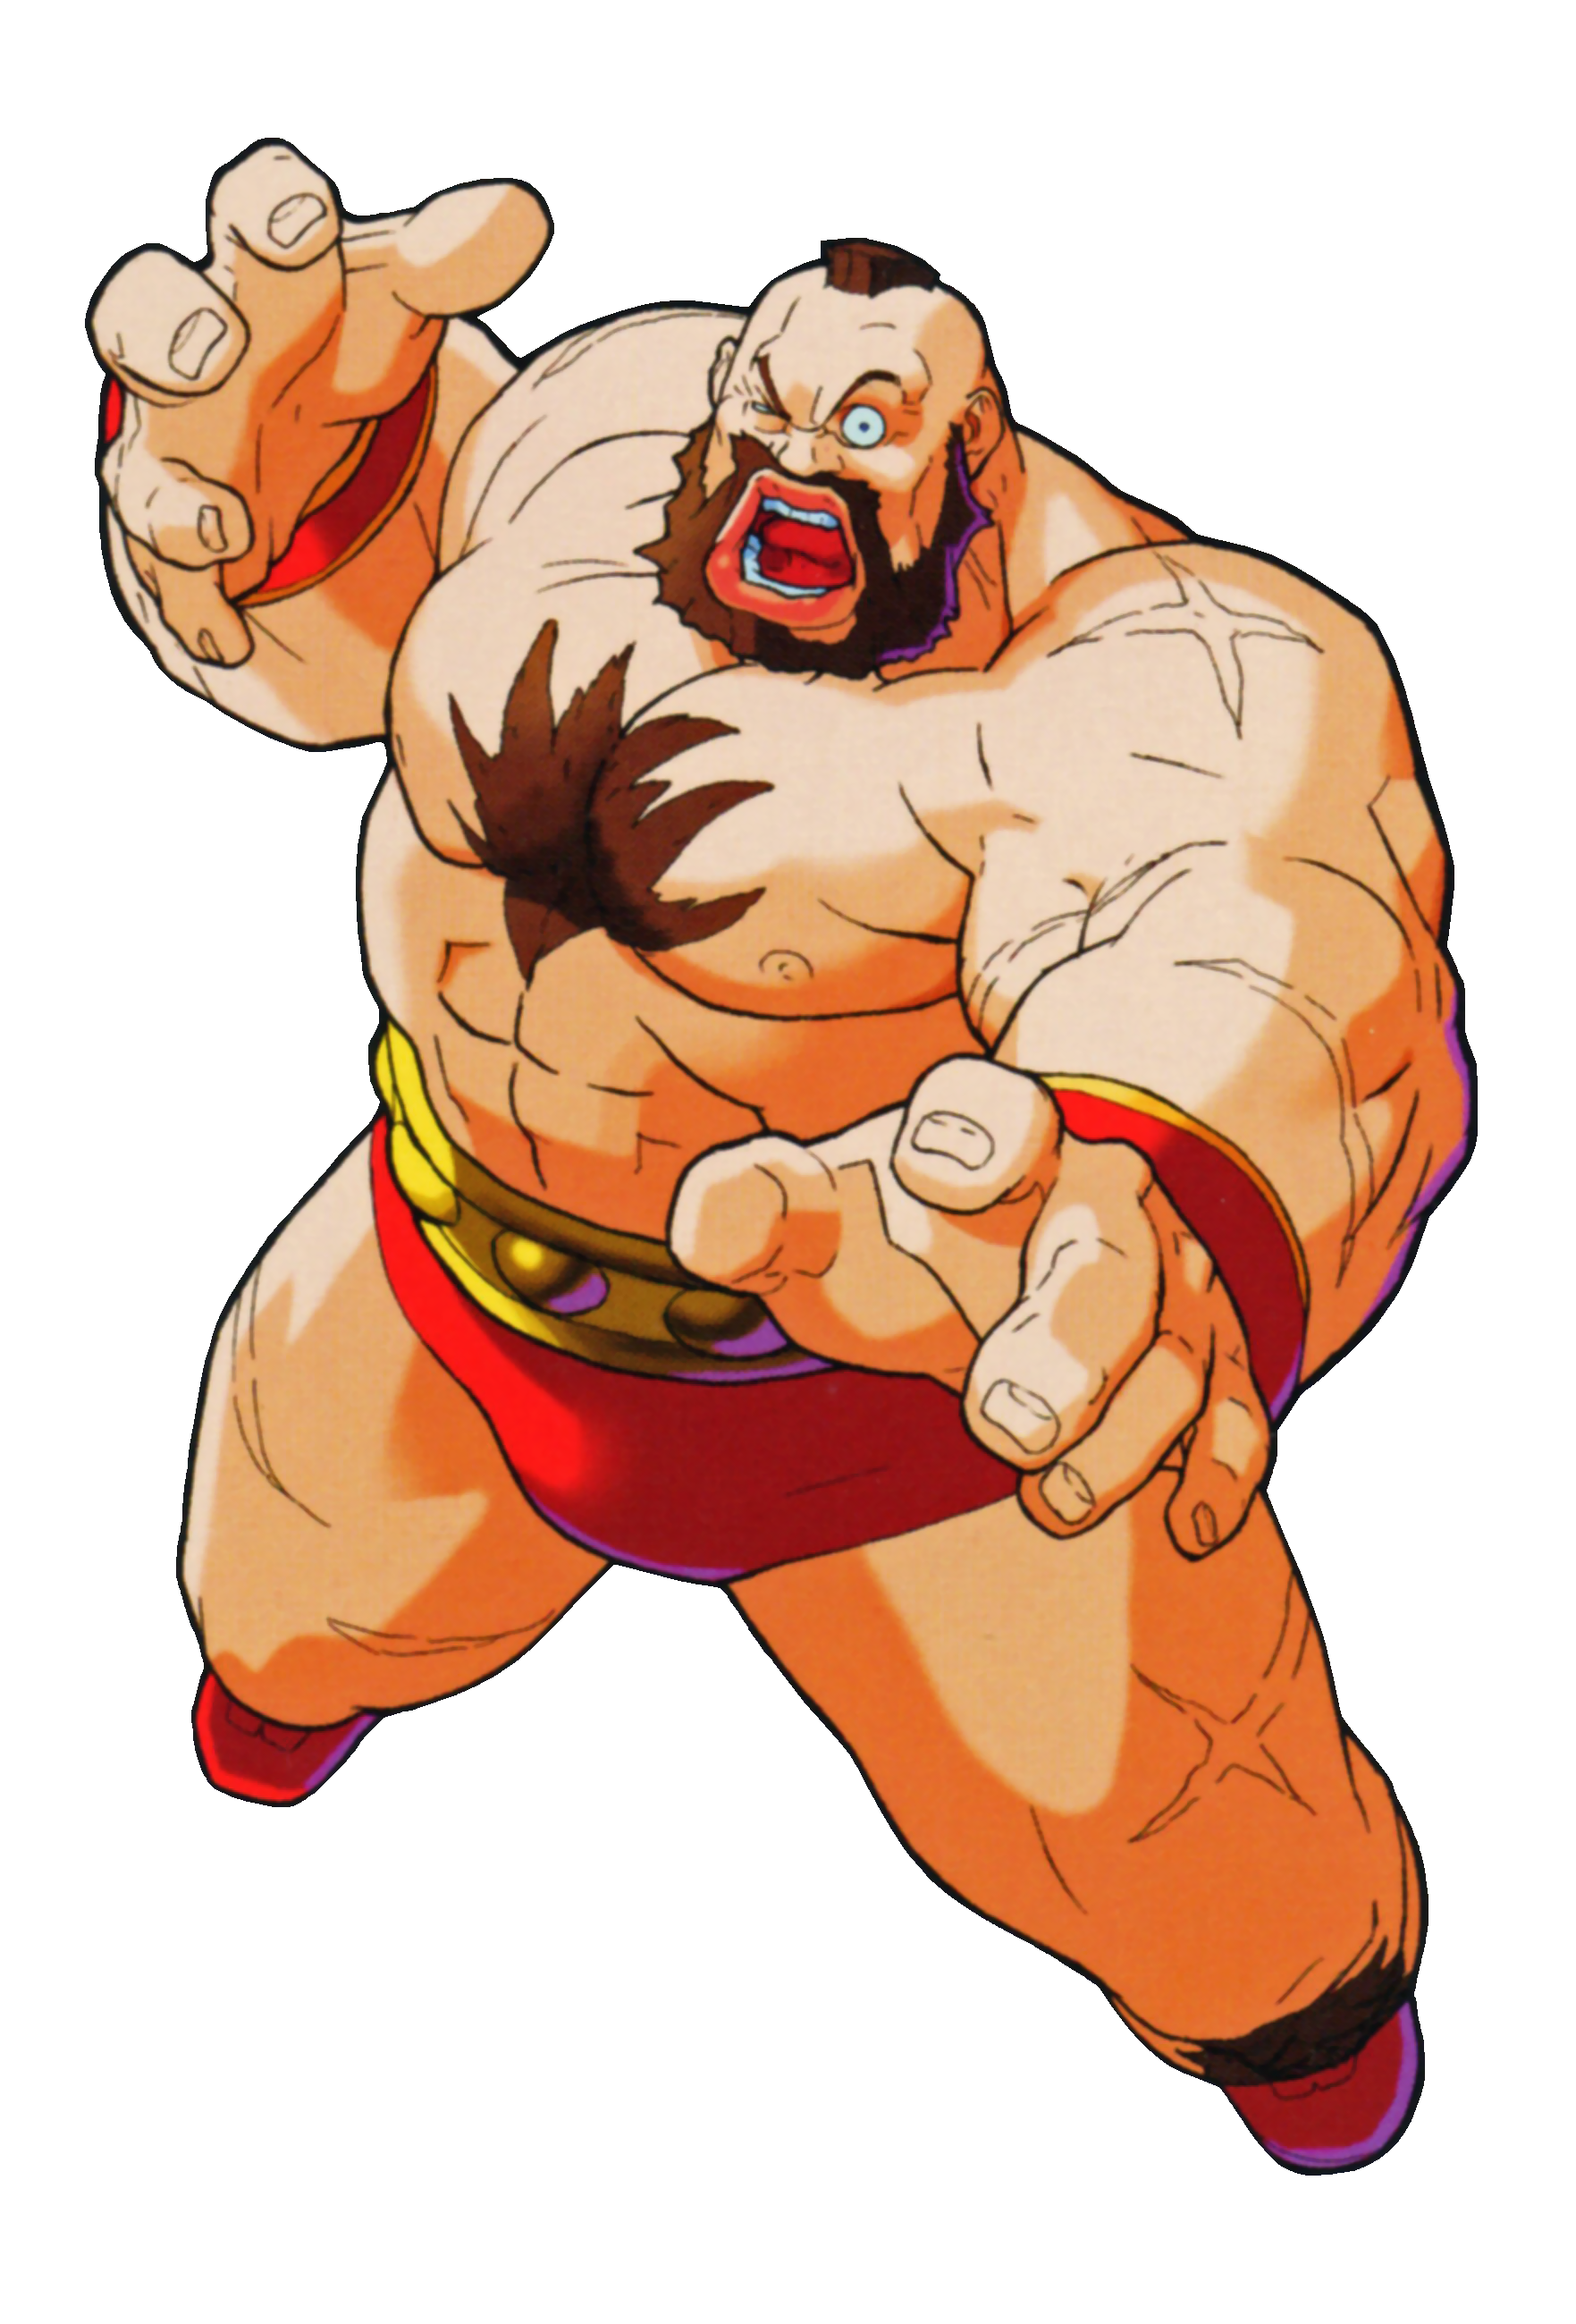 Marvel super heroes vs street fighter png. Image zangief as he